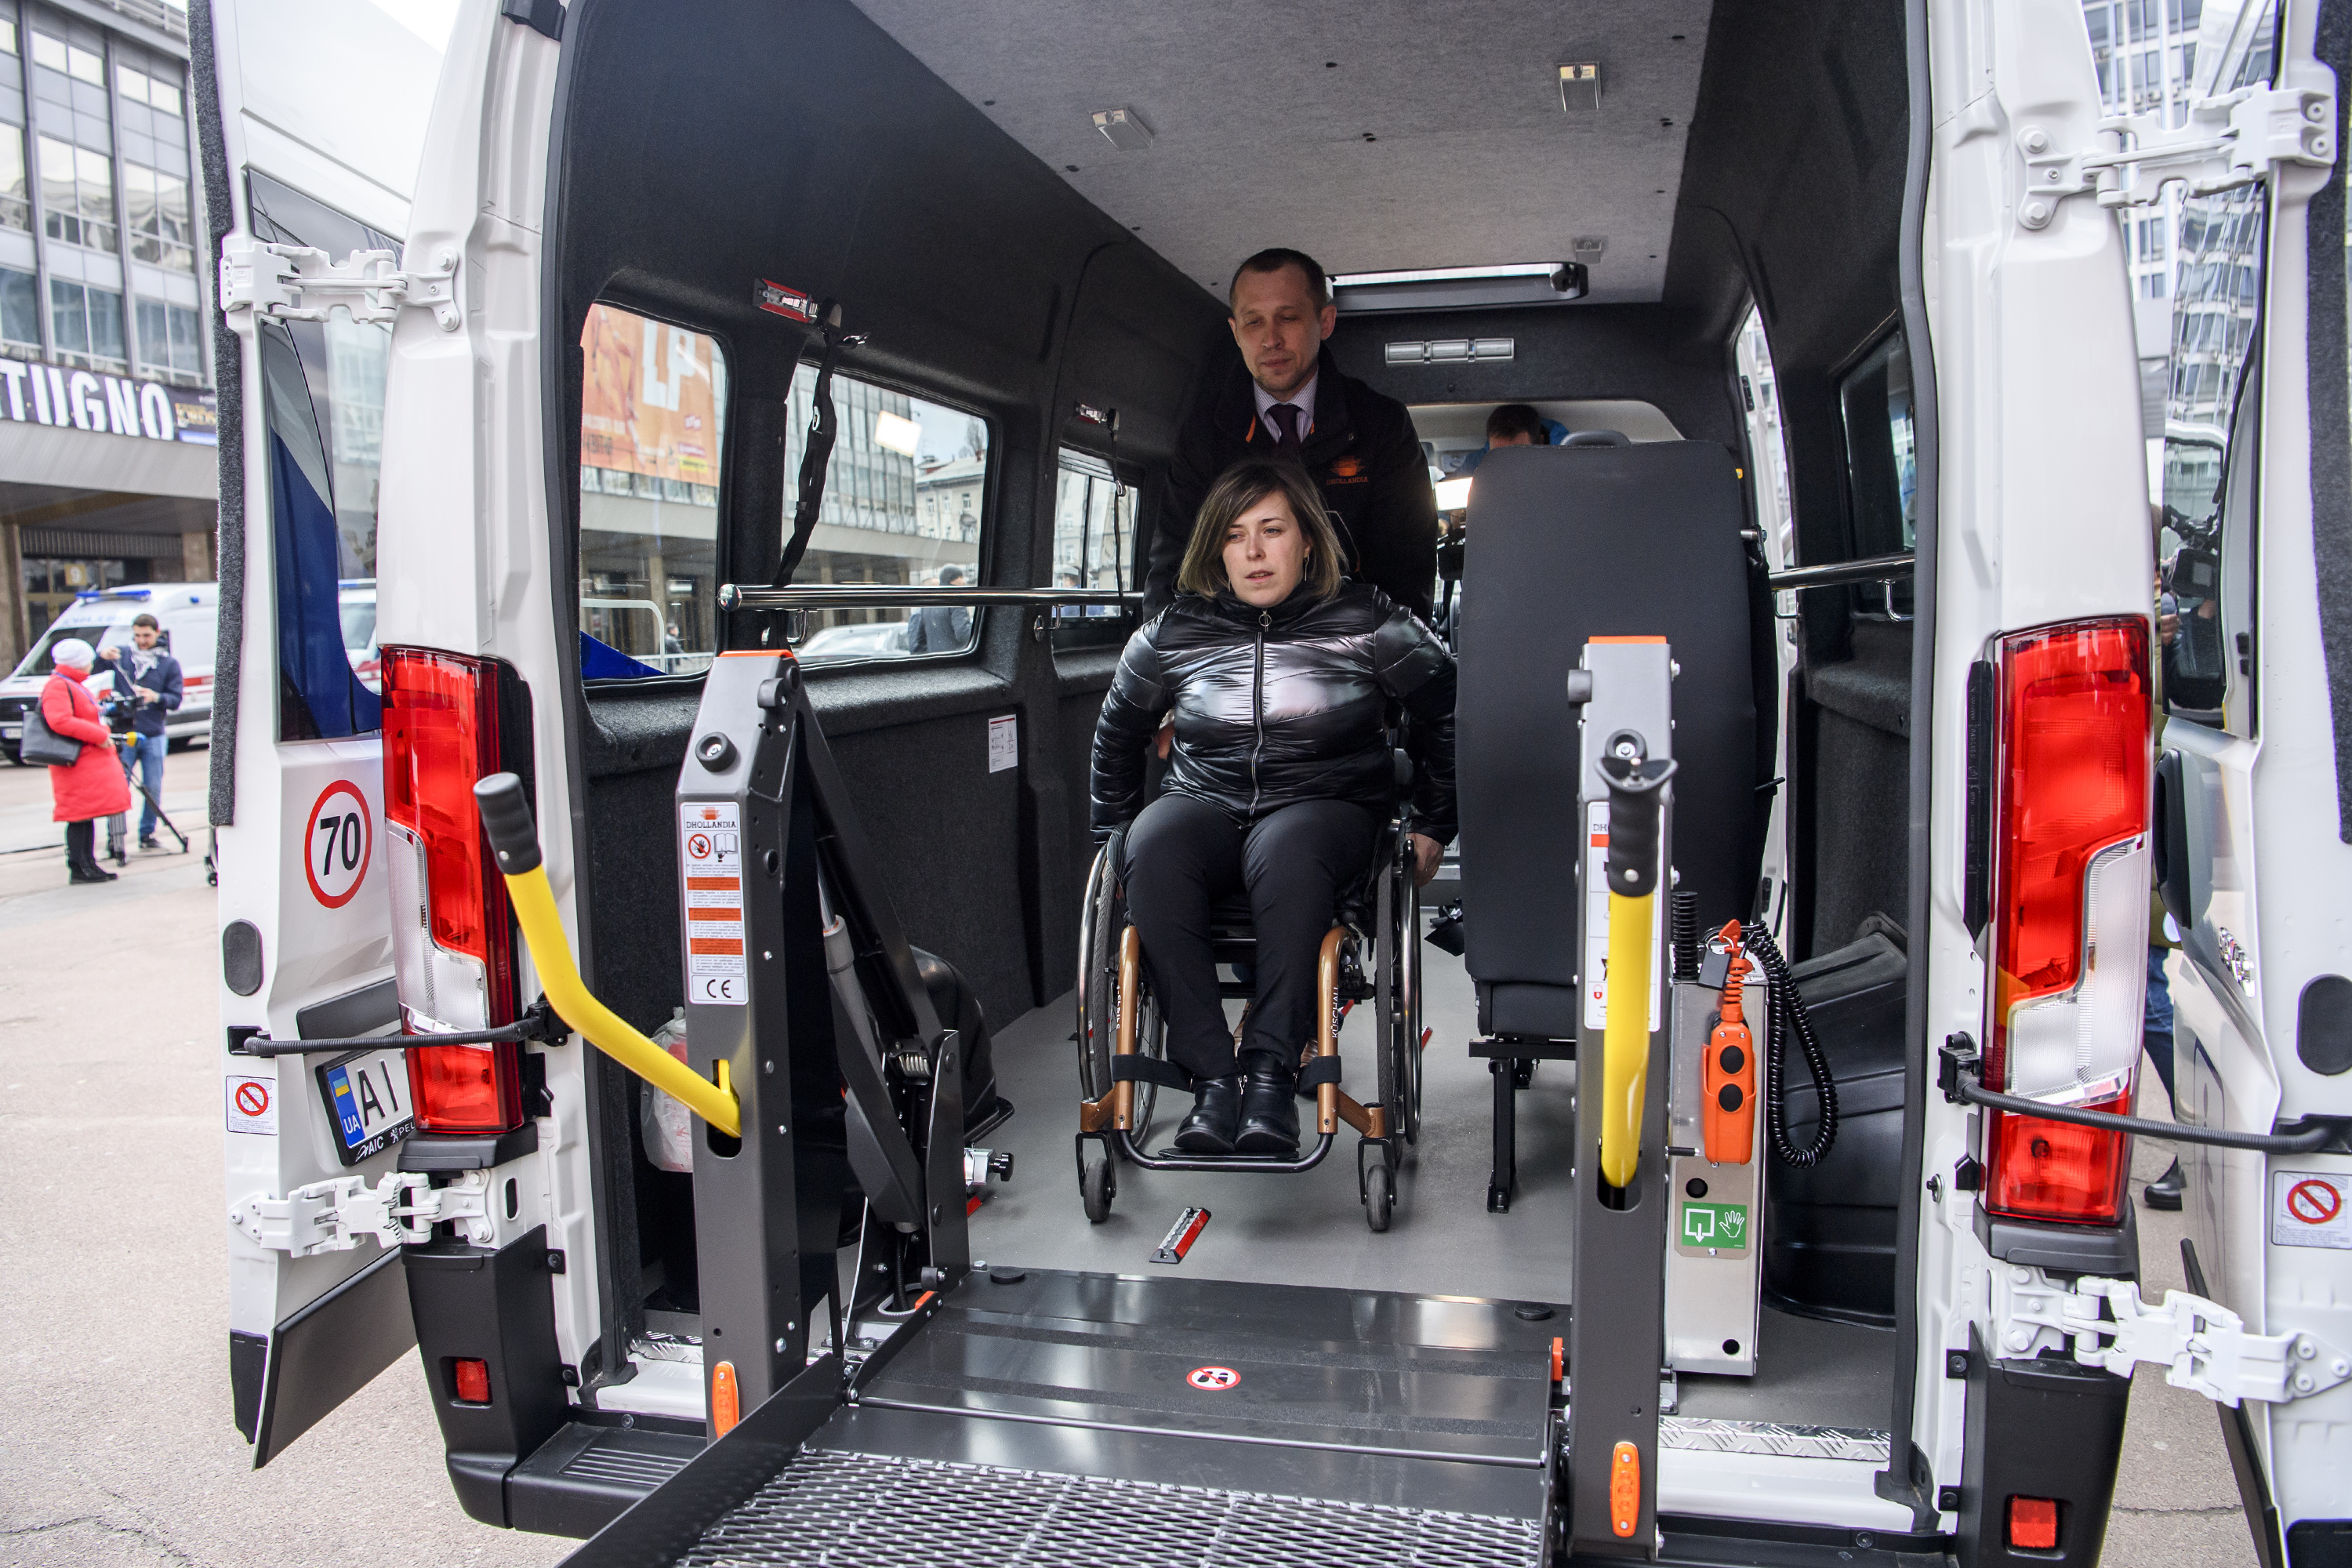 15 hromadas received special vehicles to serve physically challenged citizens